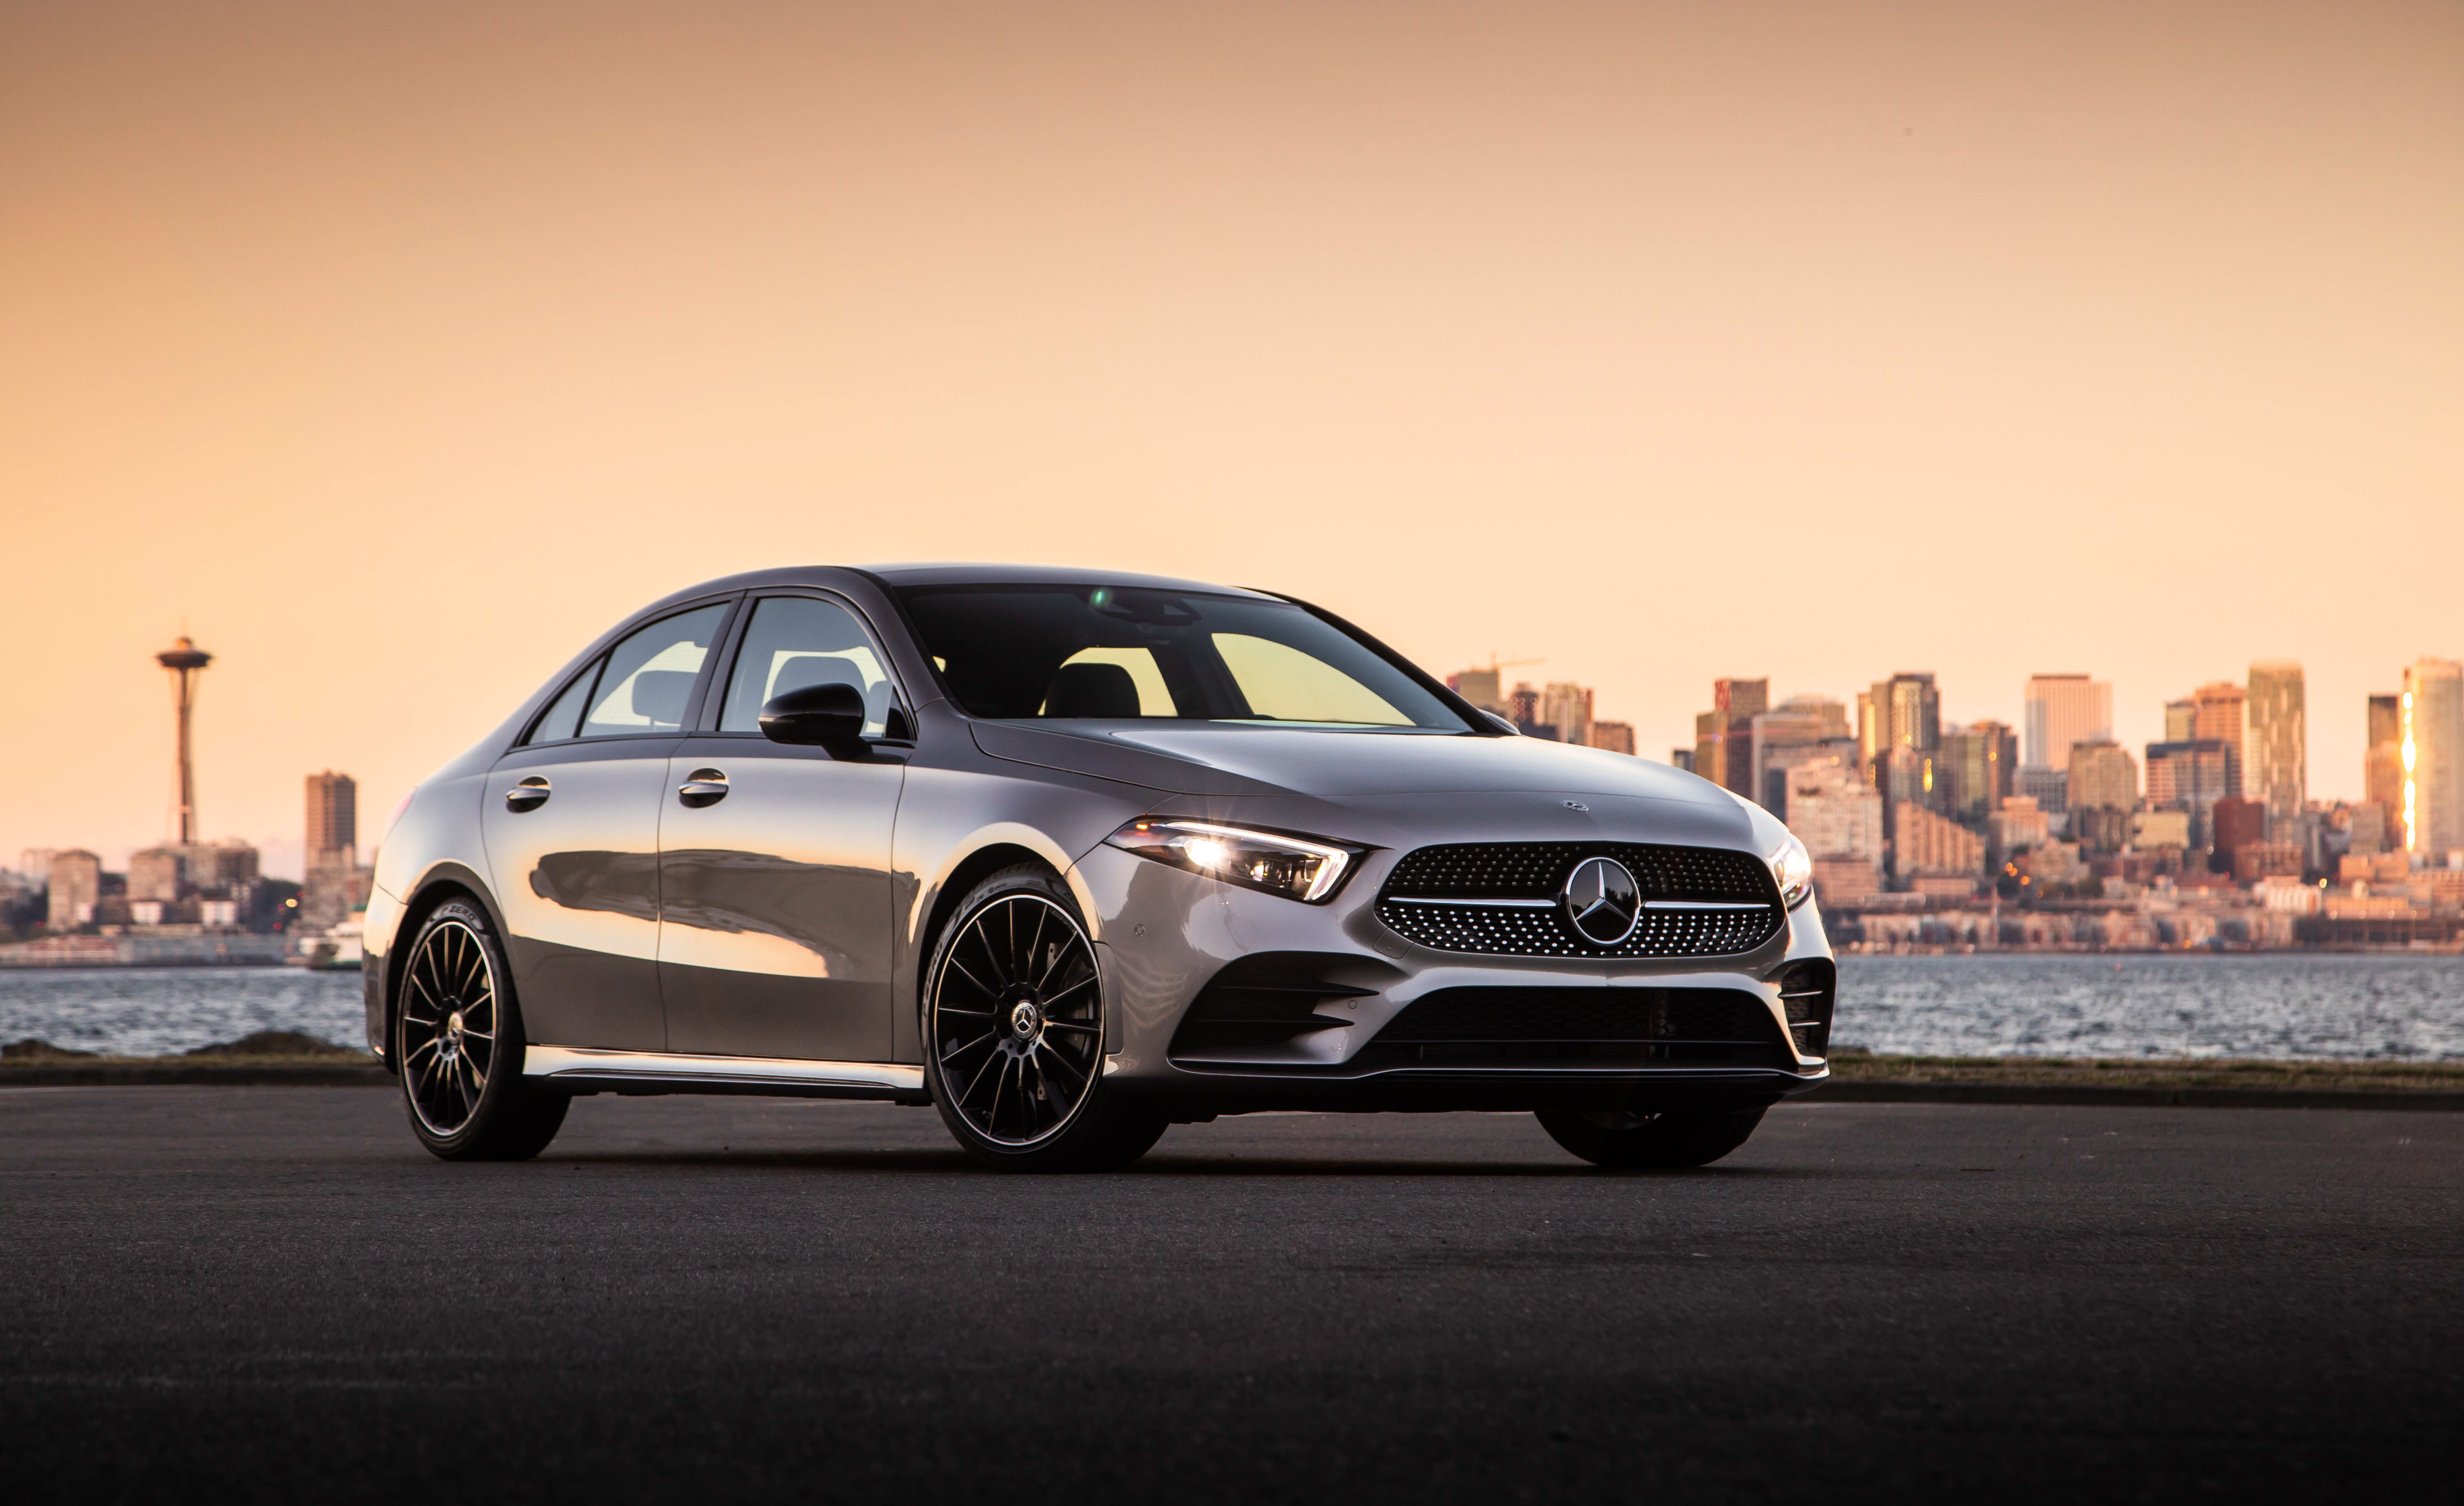 2019 Mercedes Benz A Class Sedan Pricing Announced